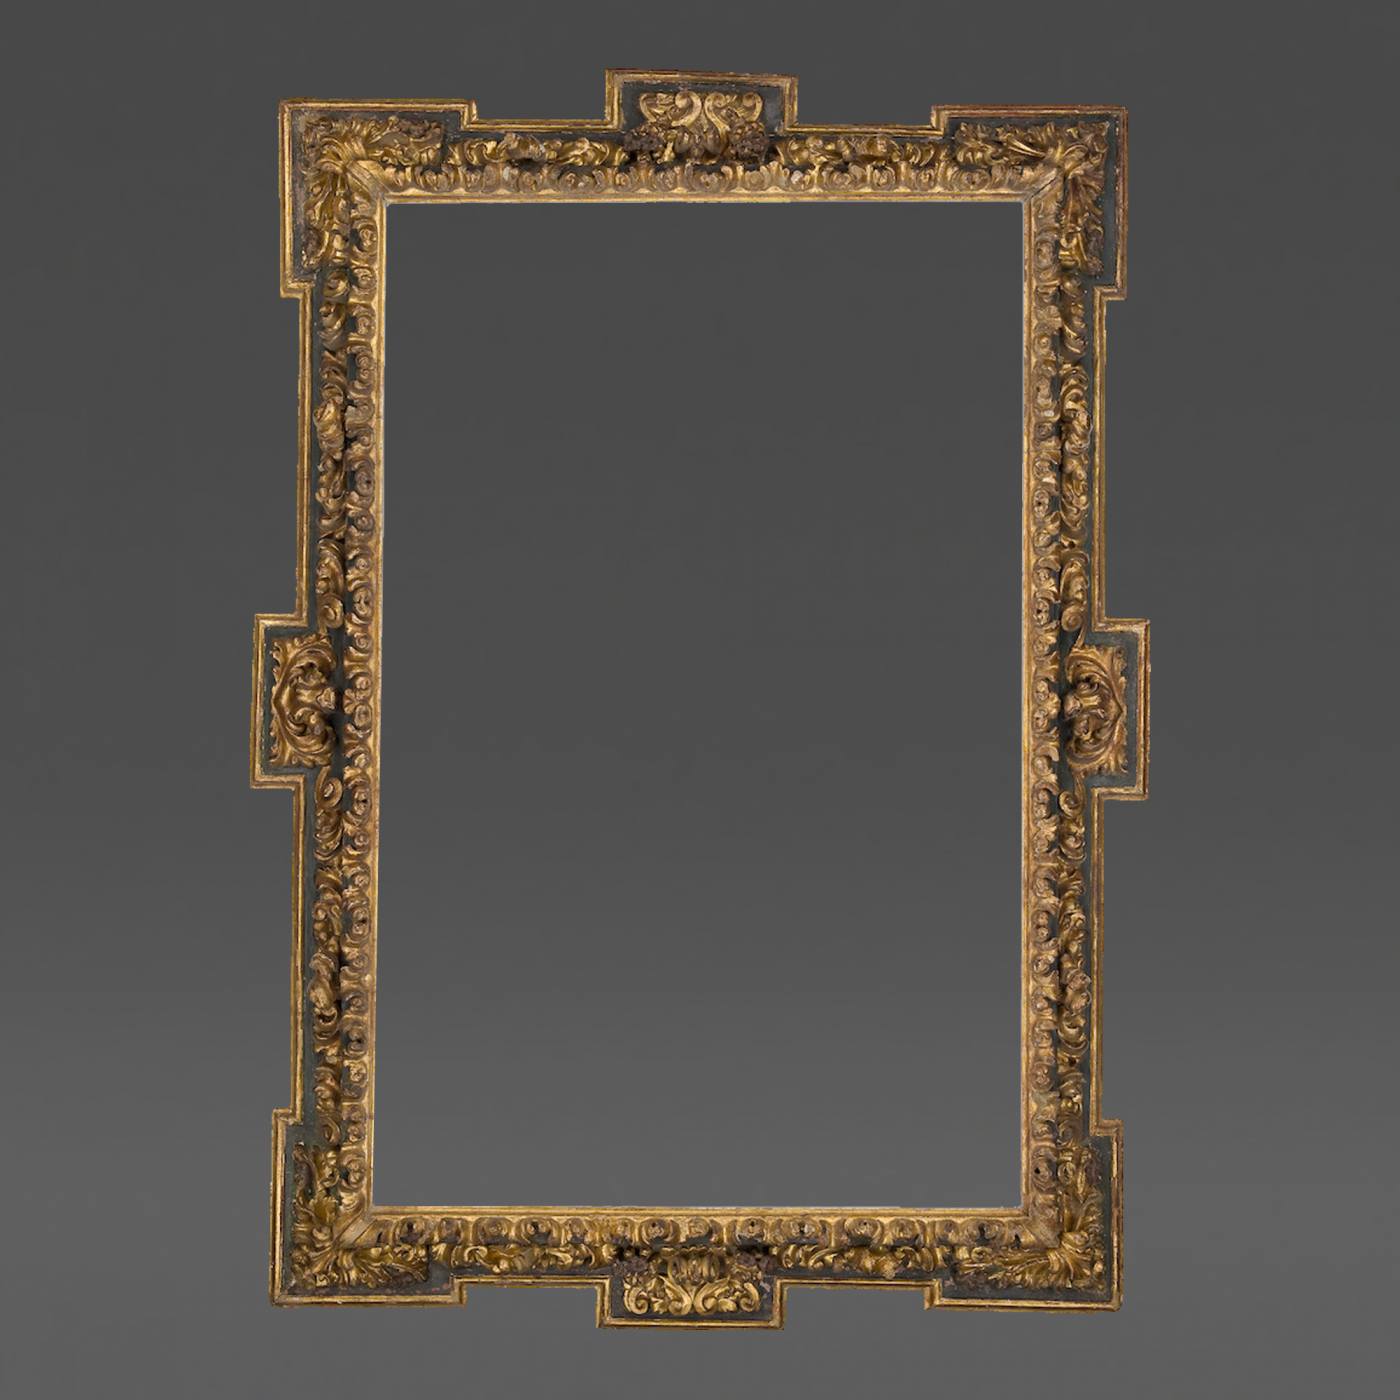 17th Century Spanish Receding Frame with Corners and Centers